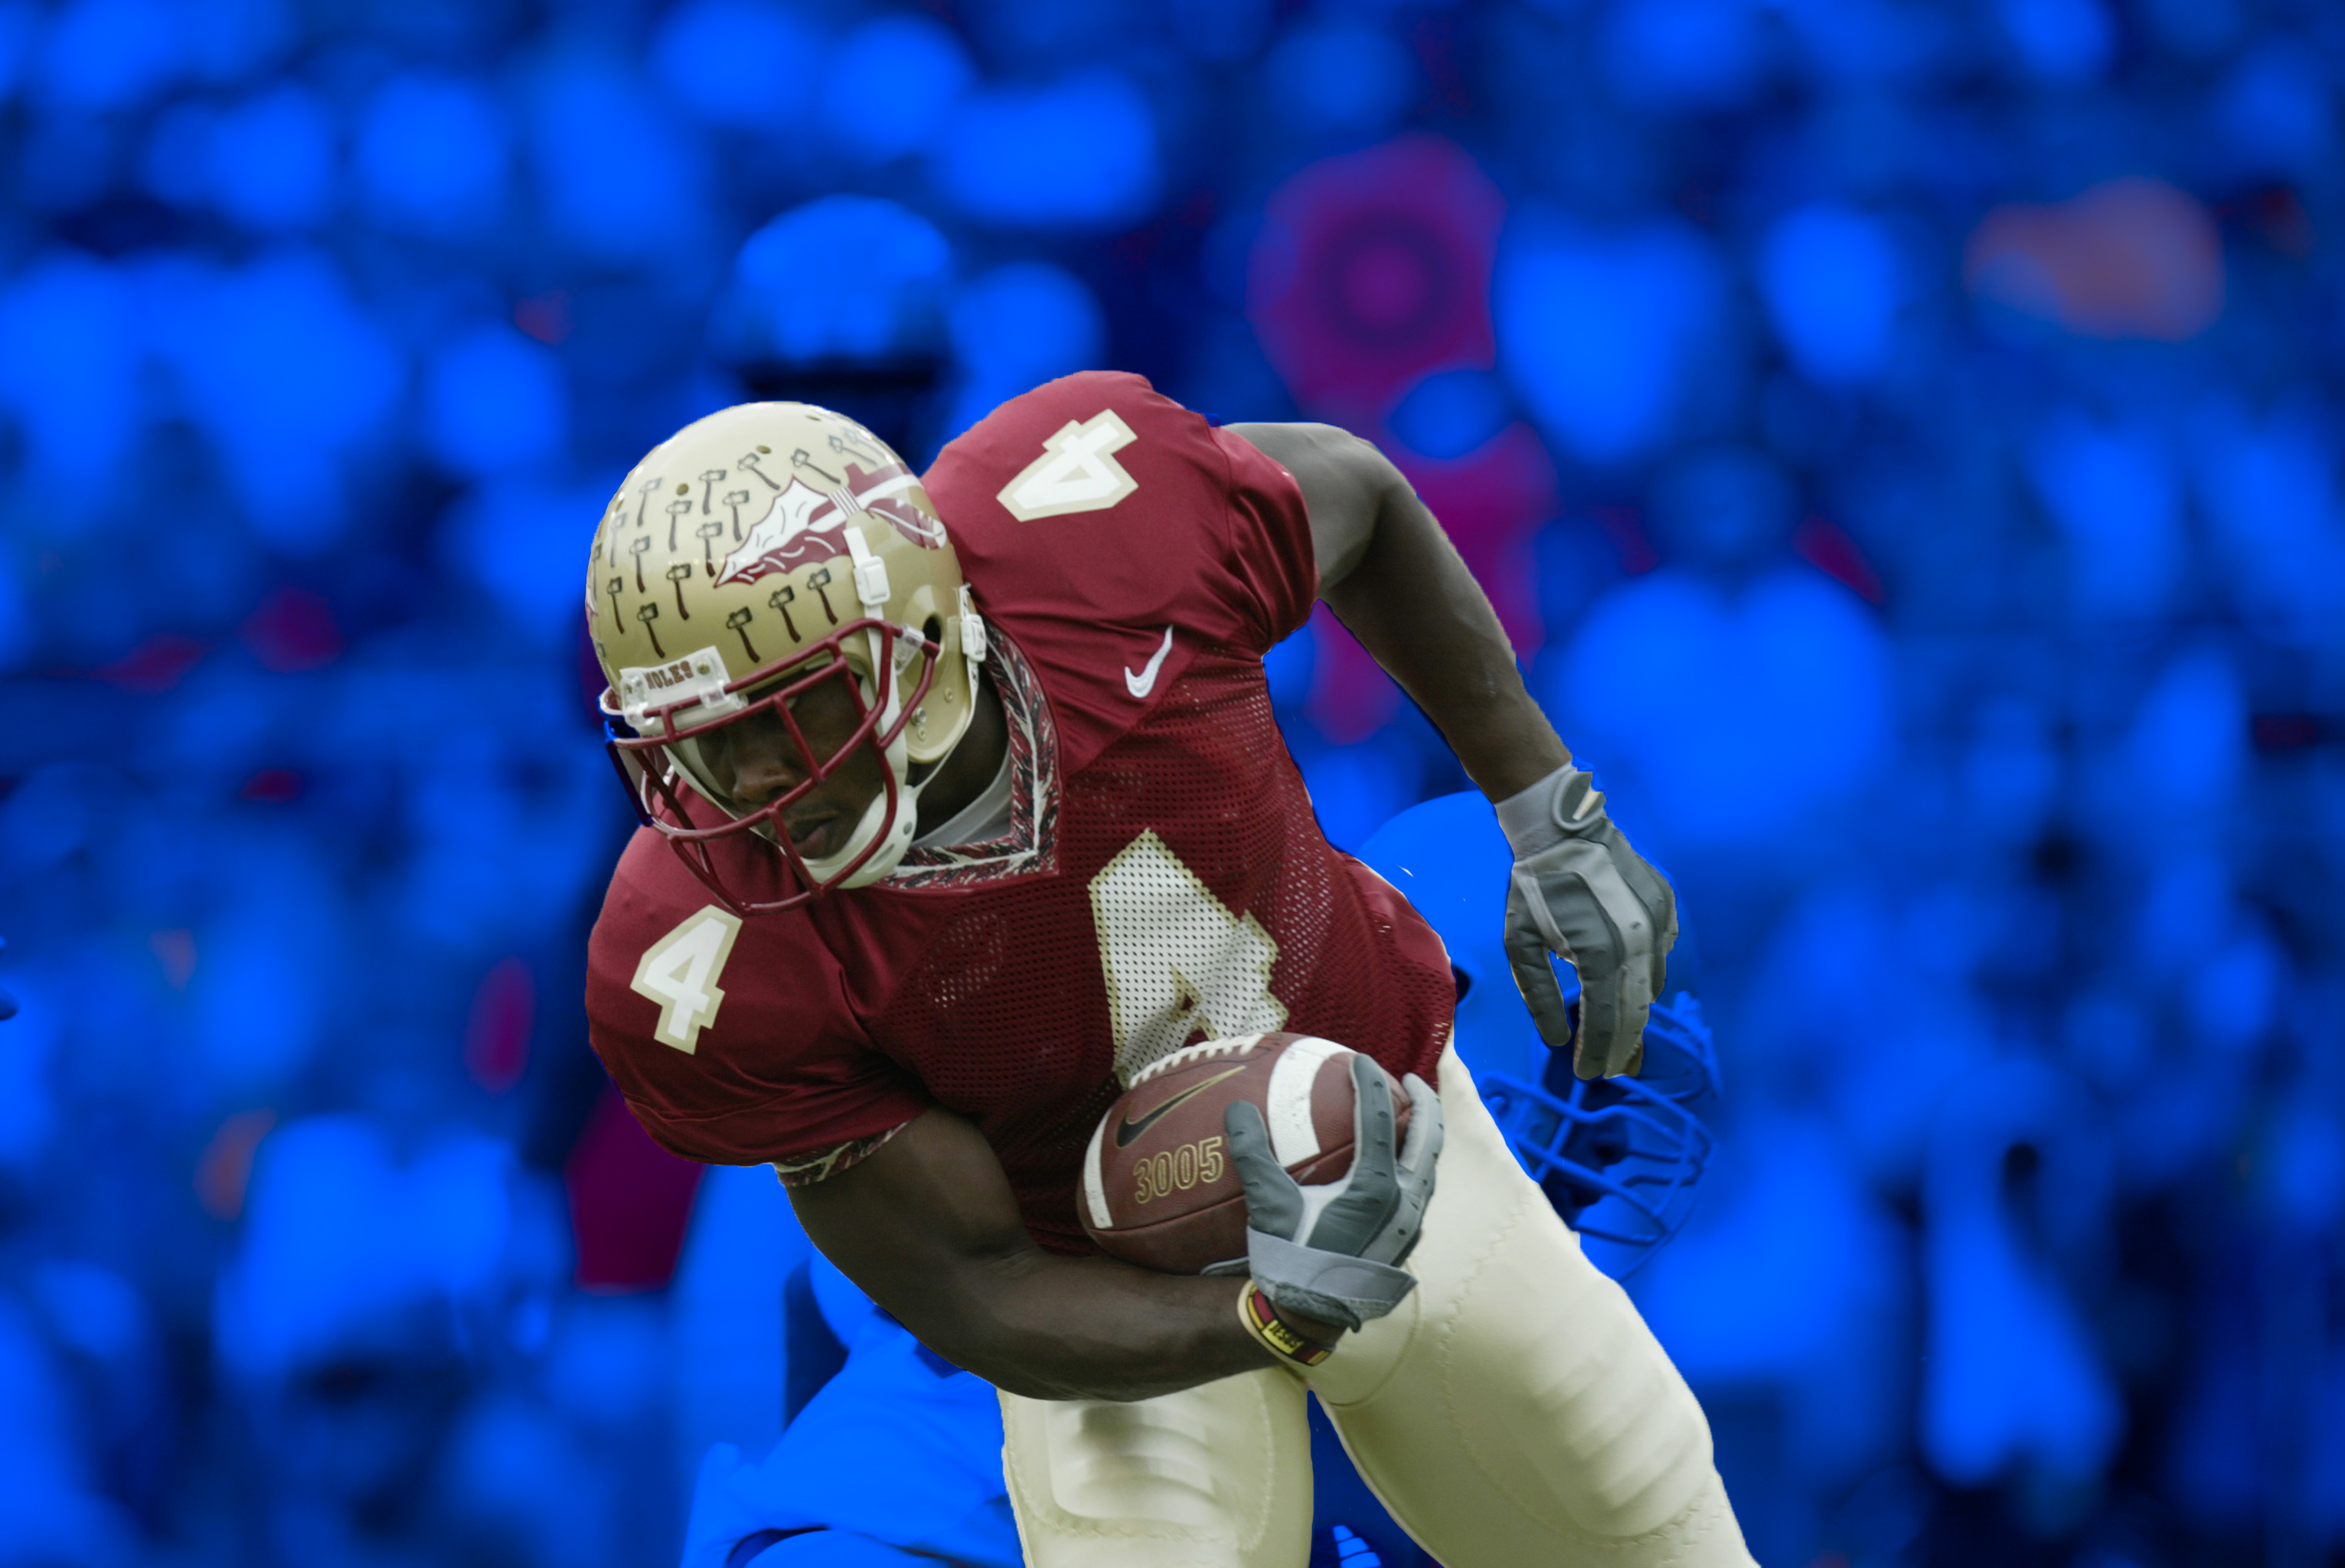 Anquan Boldin at Florida State.